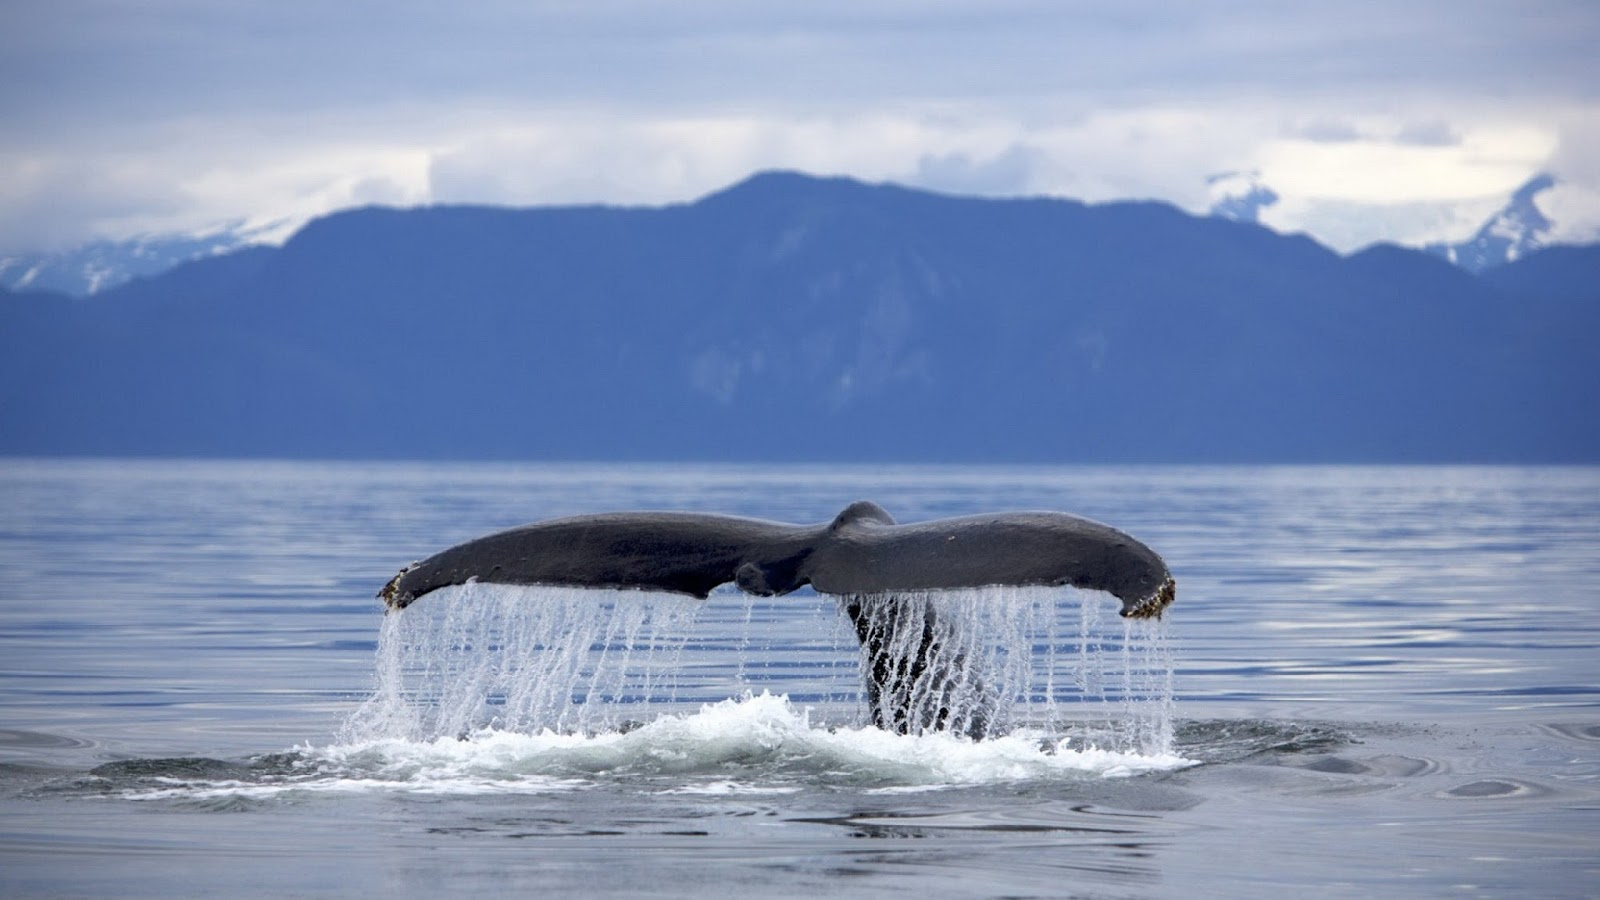 mother nature: Blue Whale - Largest Mammal on Earth